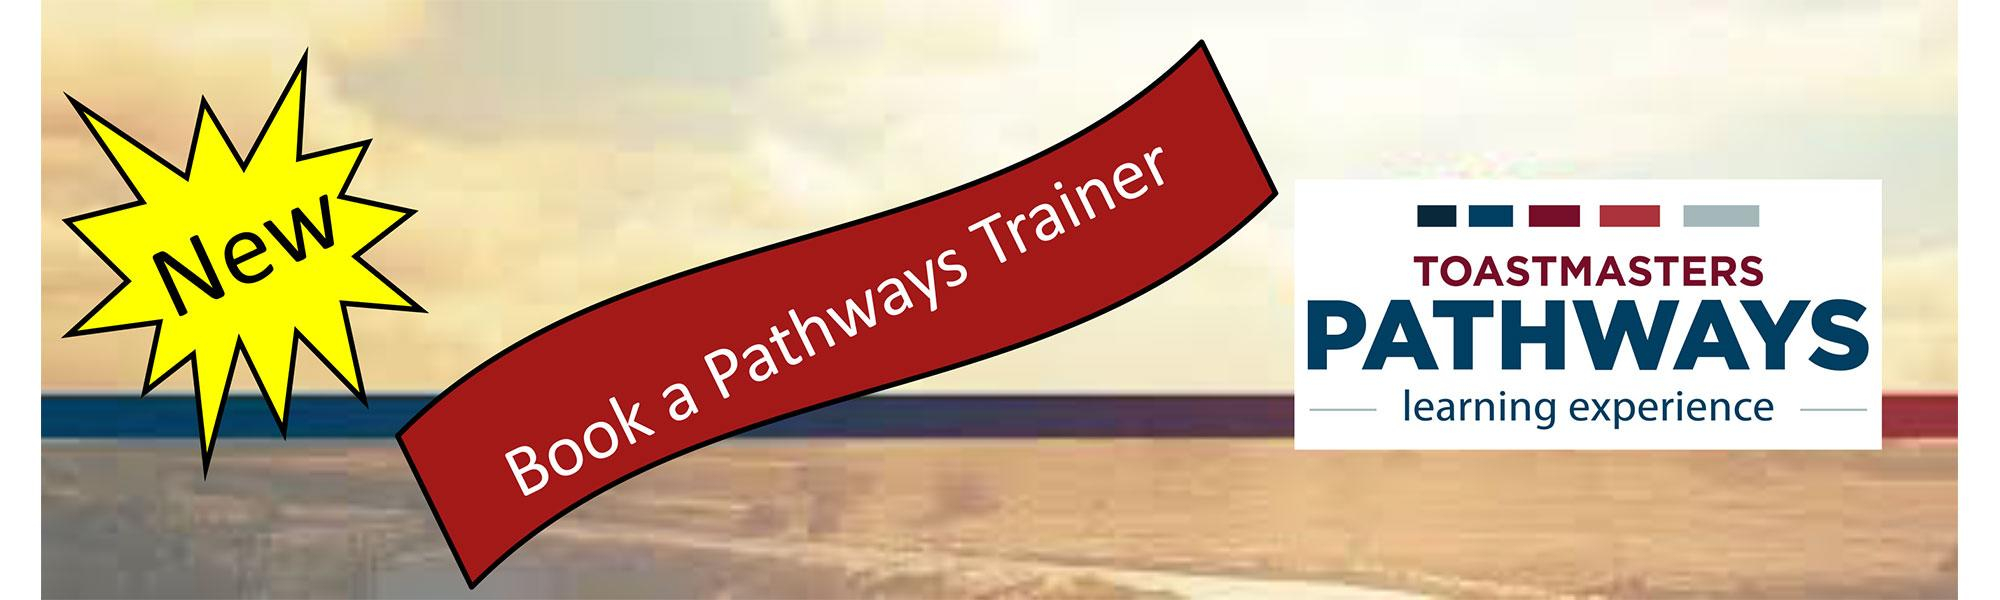 Get help with pathways